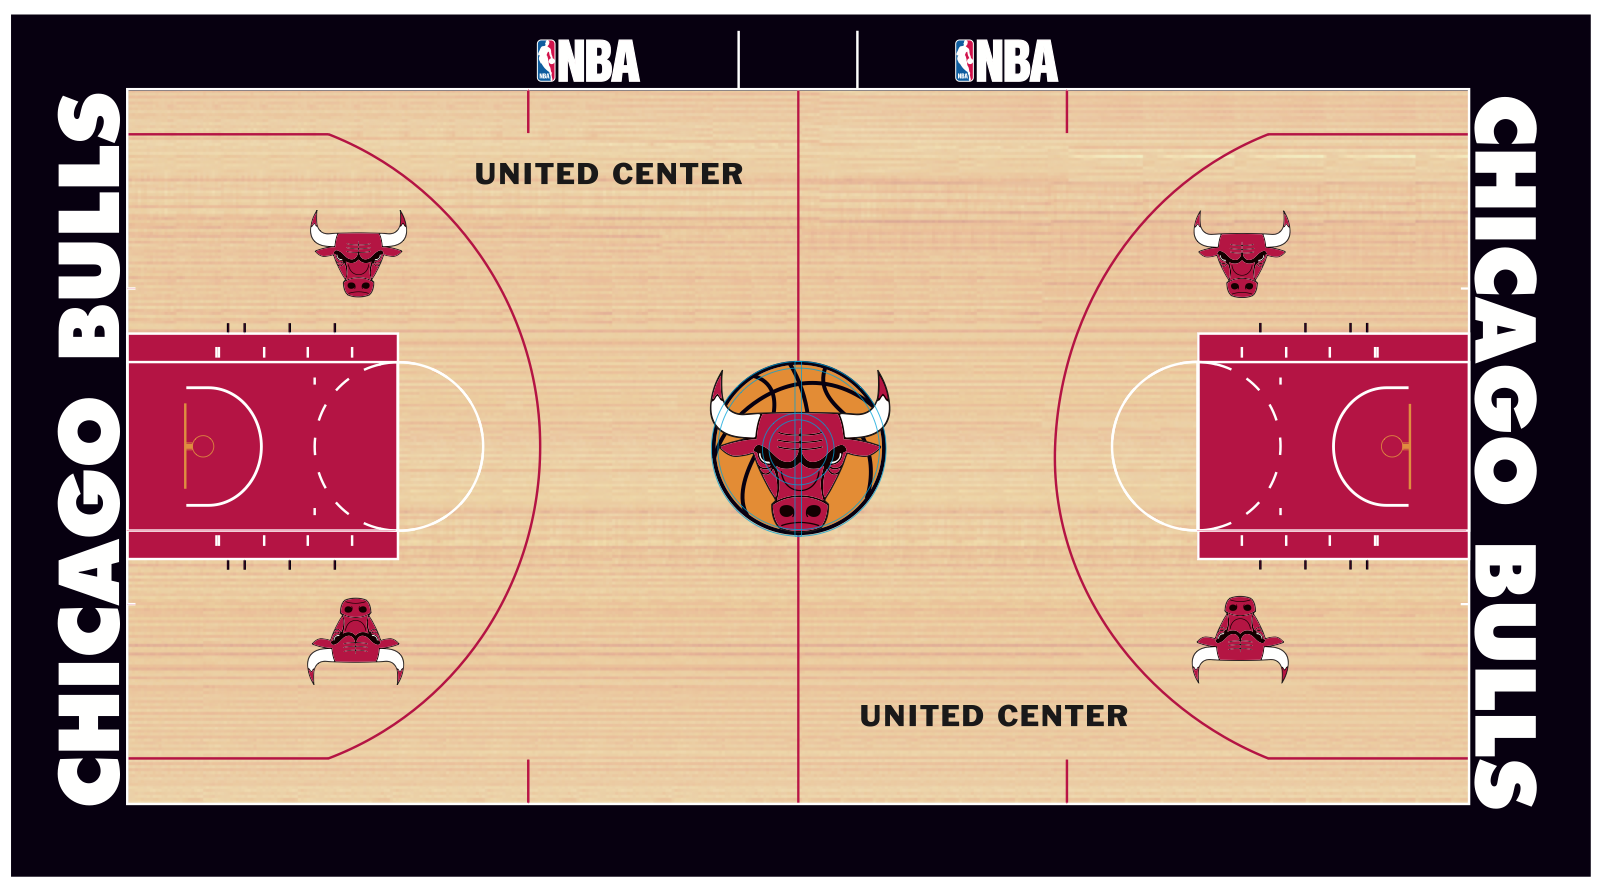 Nba court wallpaper 104469 - Terrain de basket maison ...